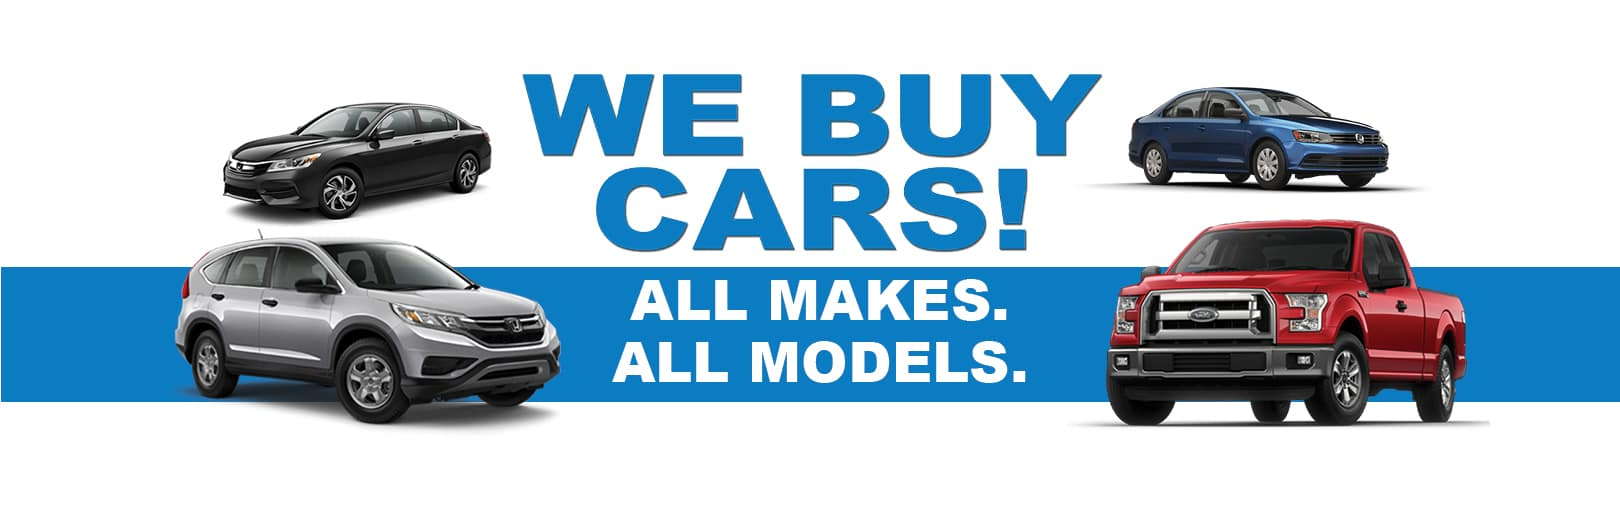 We Buy Cars at Kelly Automotive Group